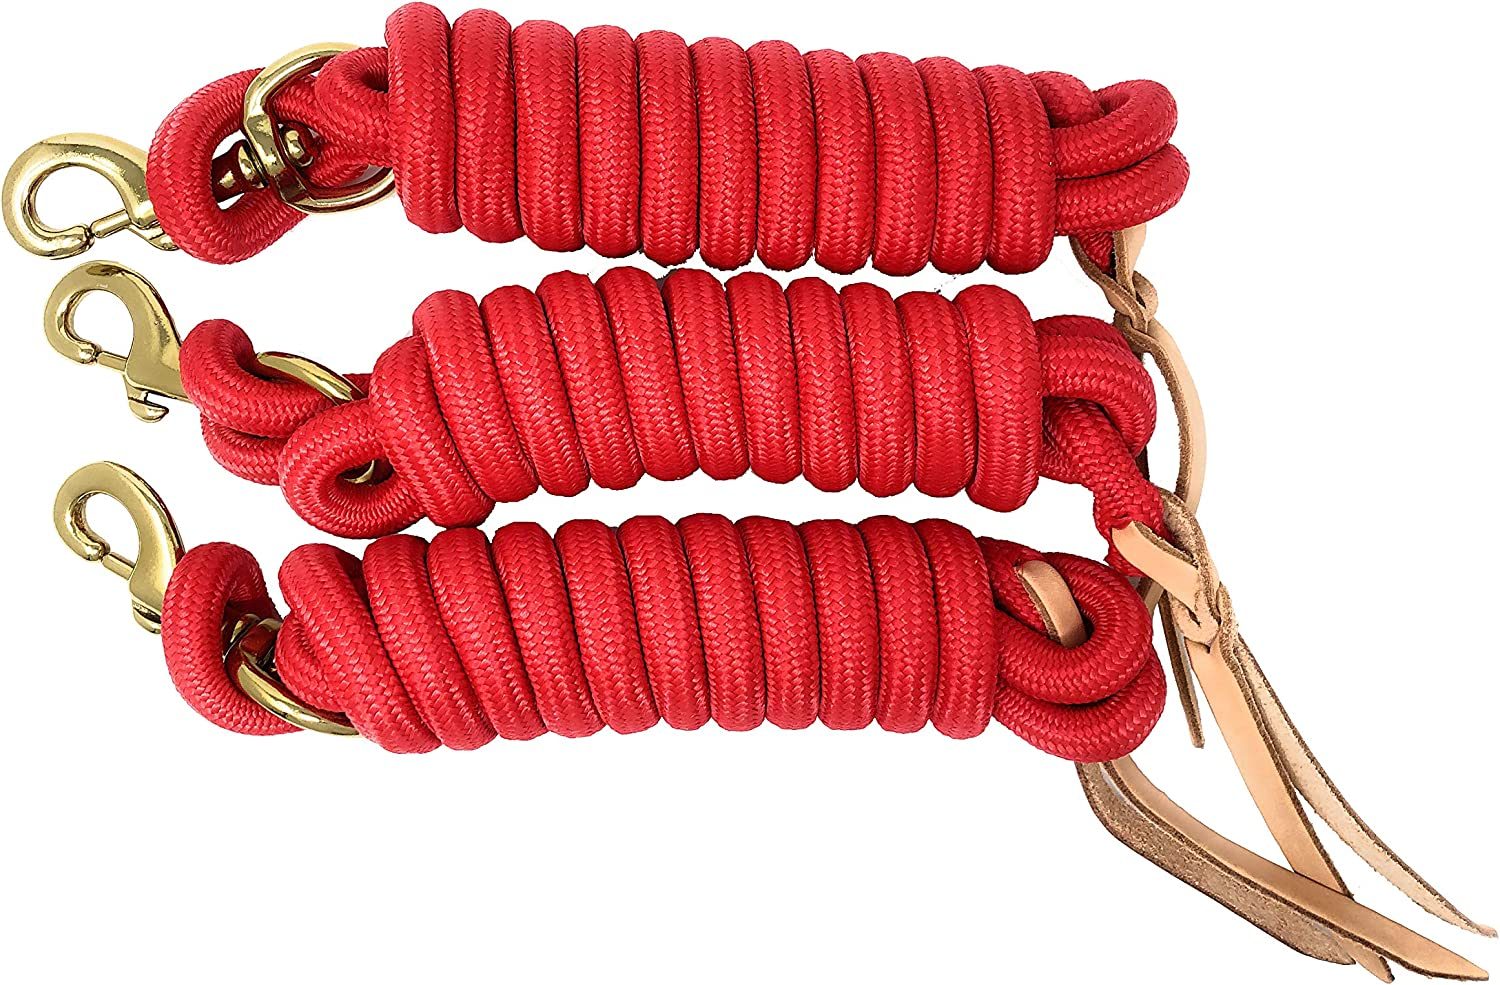 9 Foot Nylon Lead Rope with Leather 3 Limited Special Price of Popper Max 41% OFF - Set